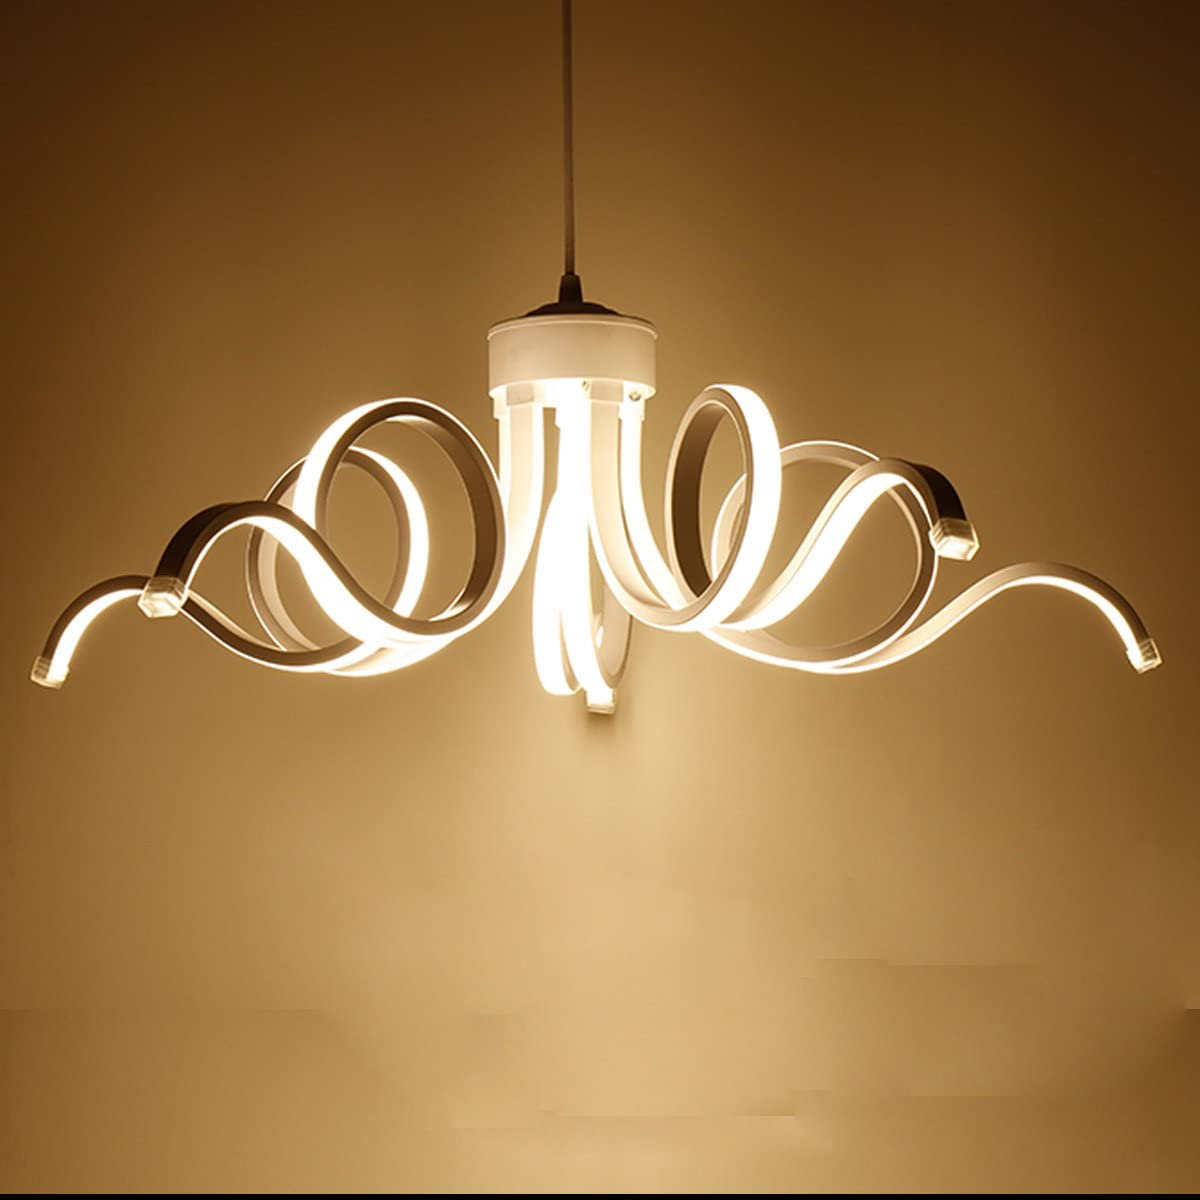 LightInTheBox Modern Chandelier Pendent Light LED Lamp Curl Style for Hallway,Bedroom,Kitchen,Kids Room Warm White